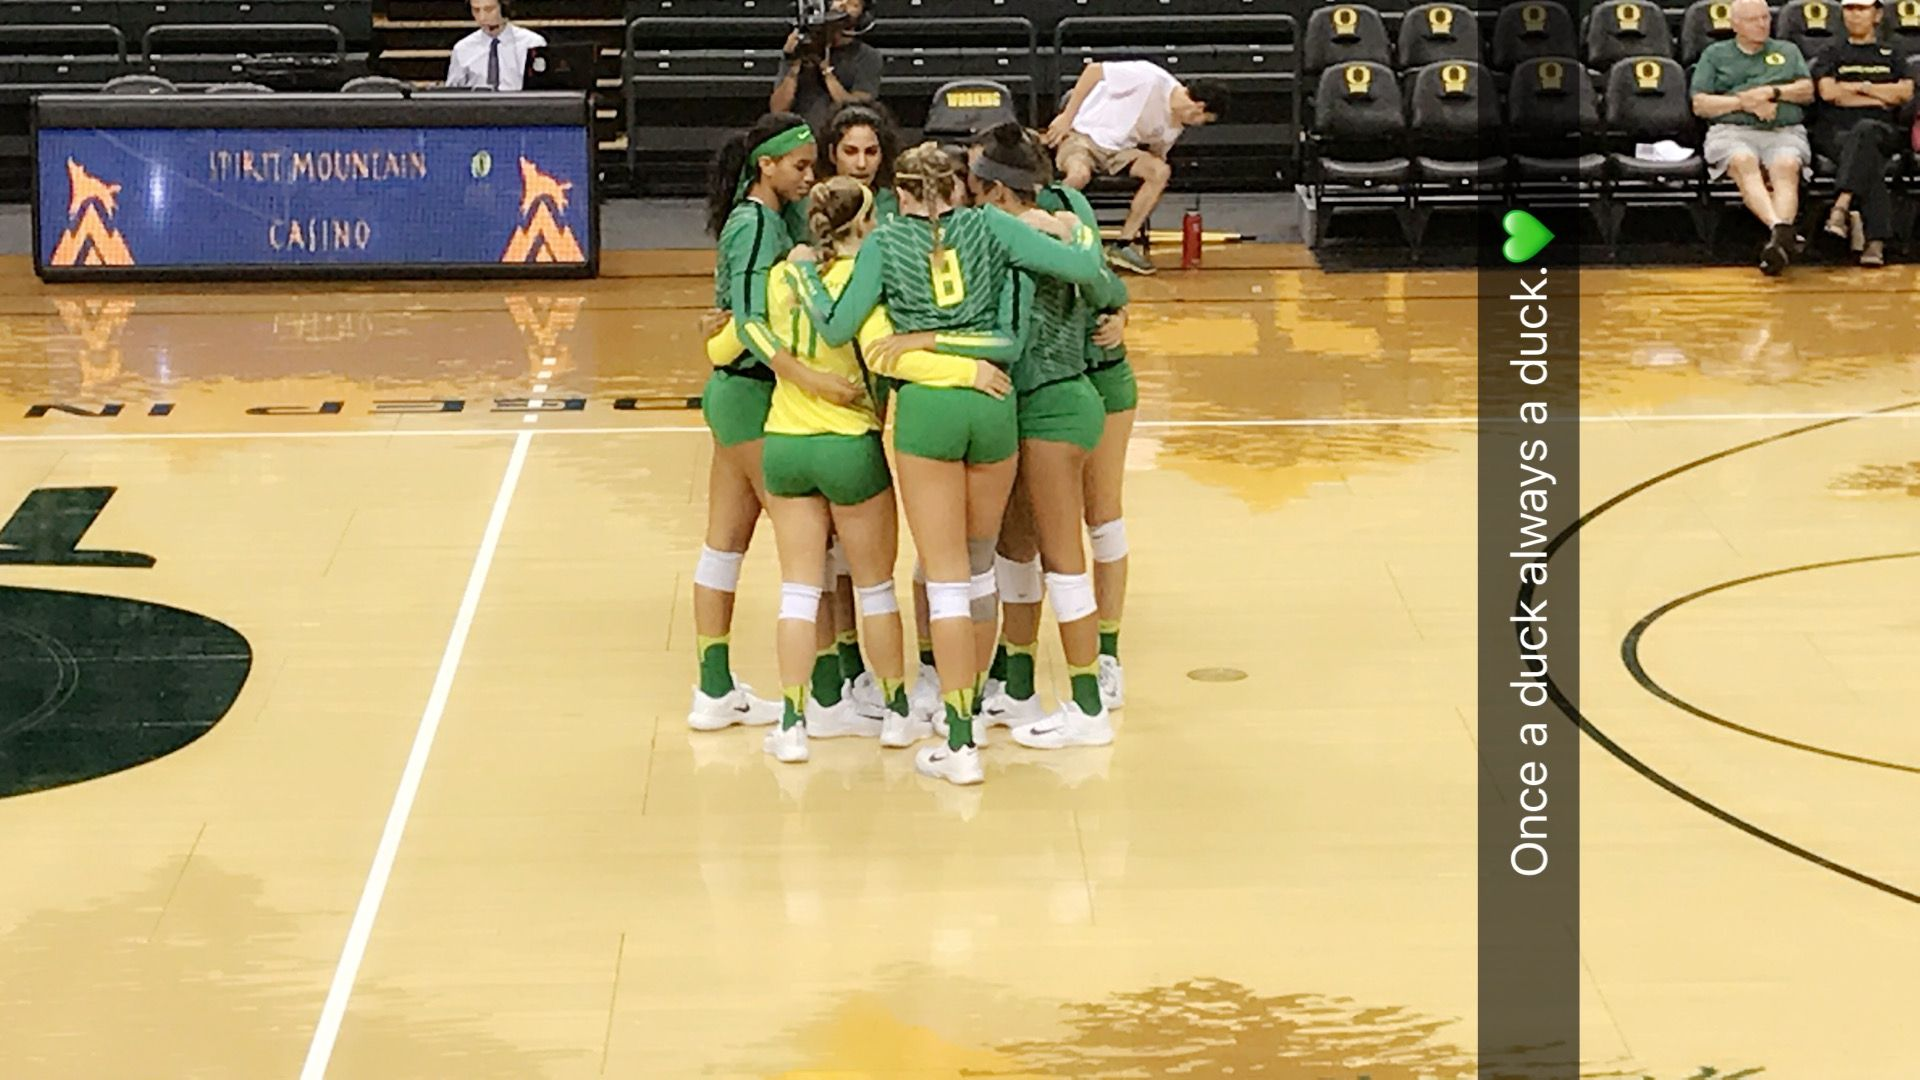 Oregon Ducks Volleyball Image By Abby Trauman Beach Volleyball Volleyball Oregon Ducks